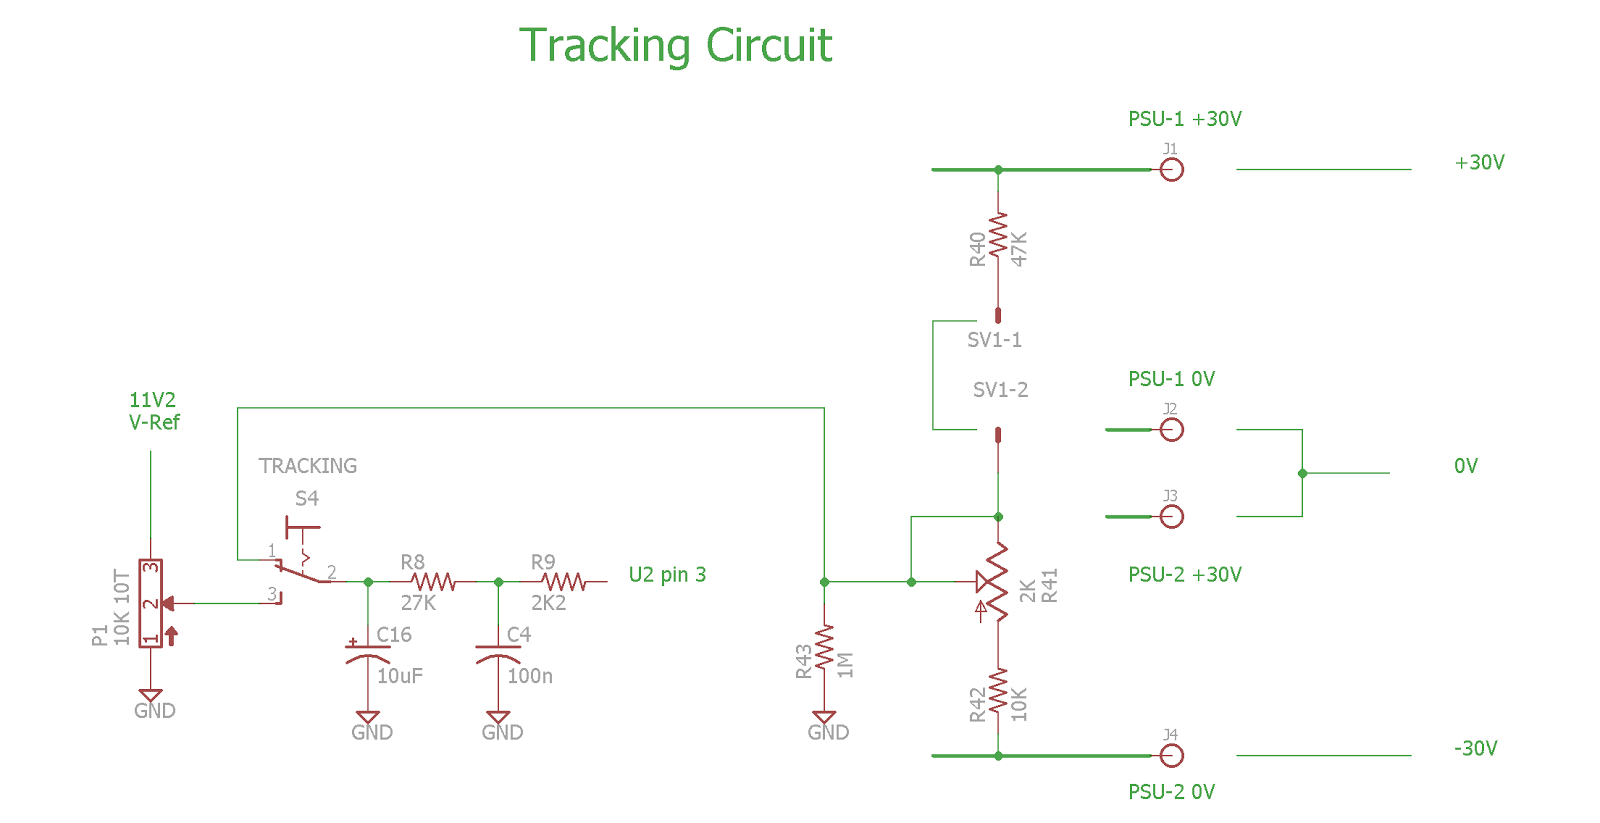 Pauls Diy Electronics Blog Tuning A 030v Dc 03a Psu Kit How To Build An Add On Current Limiter For Your The Slave Supply Must Be Modified As Follows Connection Of Wiper Voltage Setting Potmeter P1 Disconnected And Fed Switch